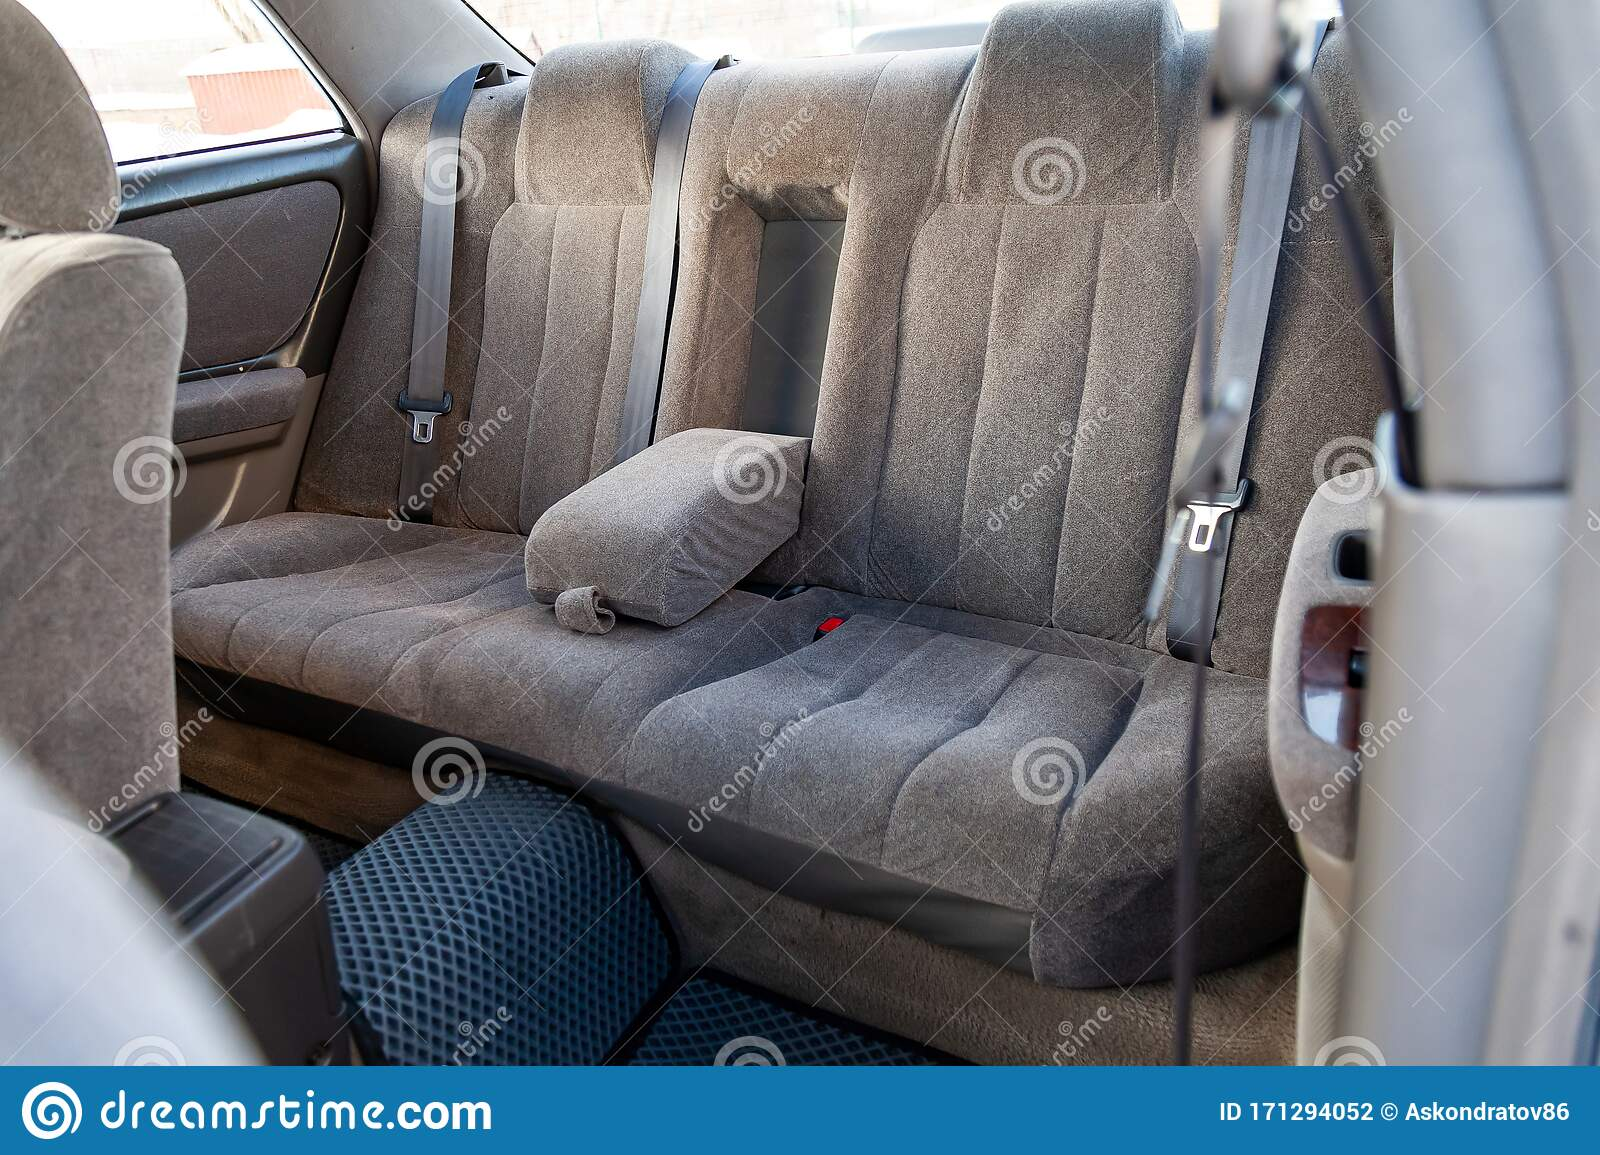 Rear Seats With Velours Fabric Upholstery In The Interior ...